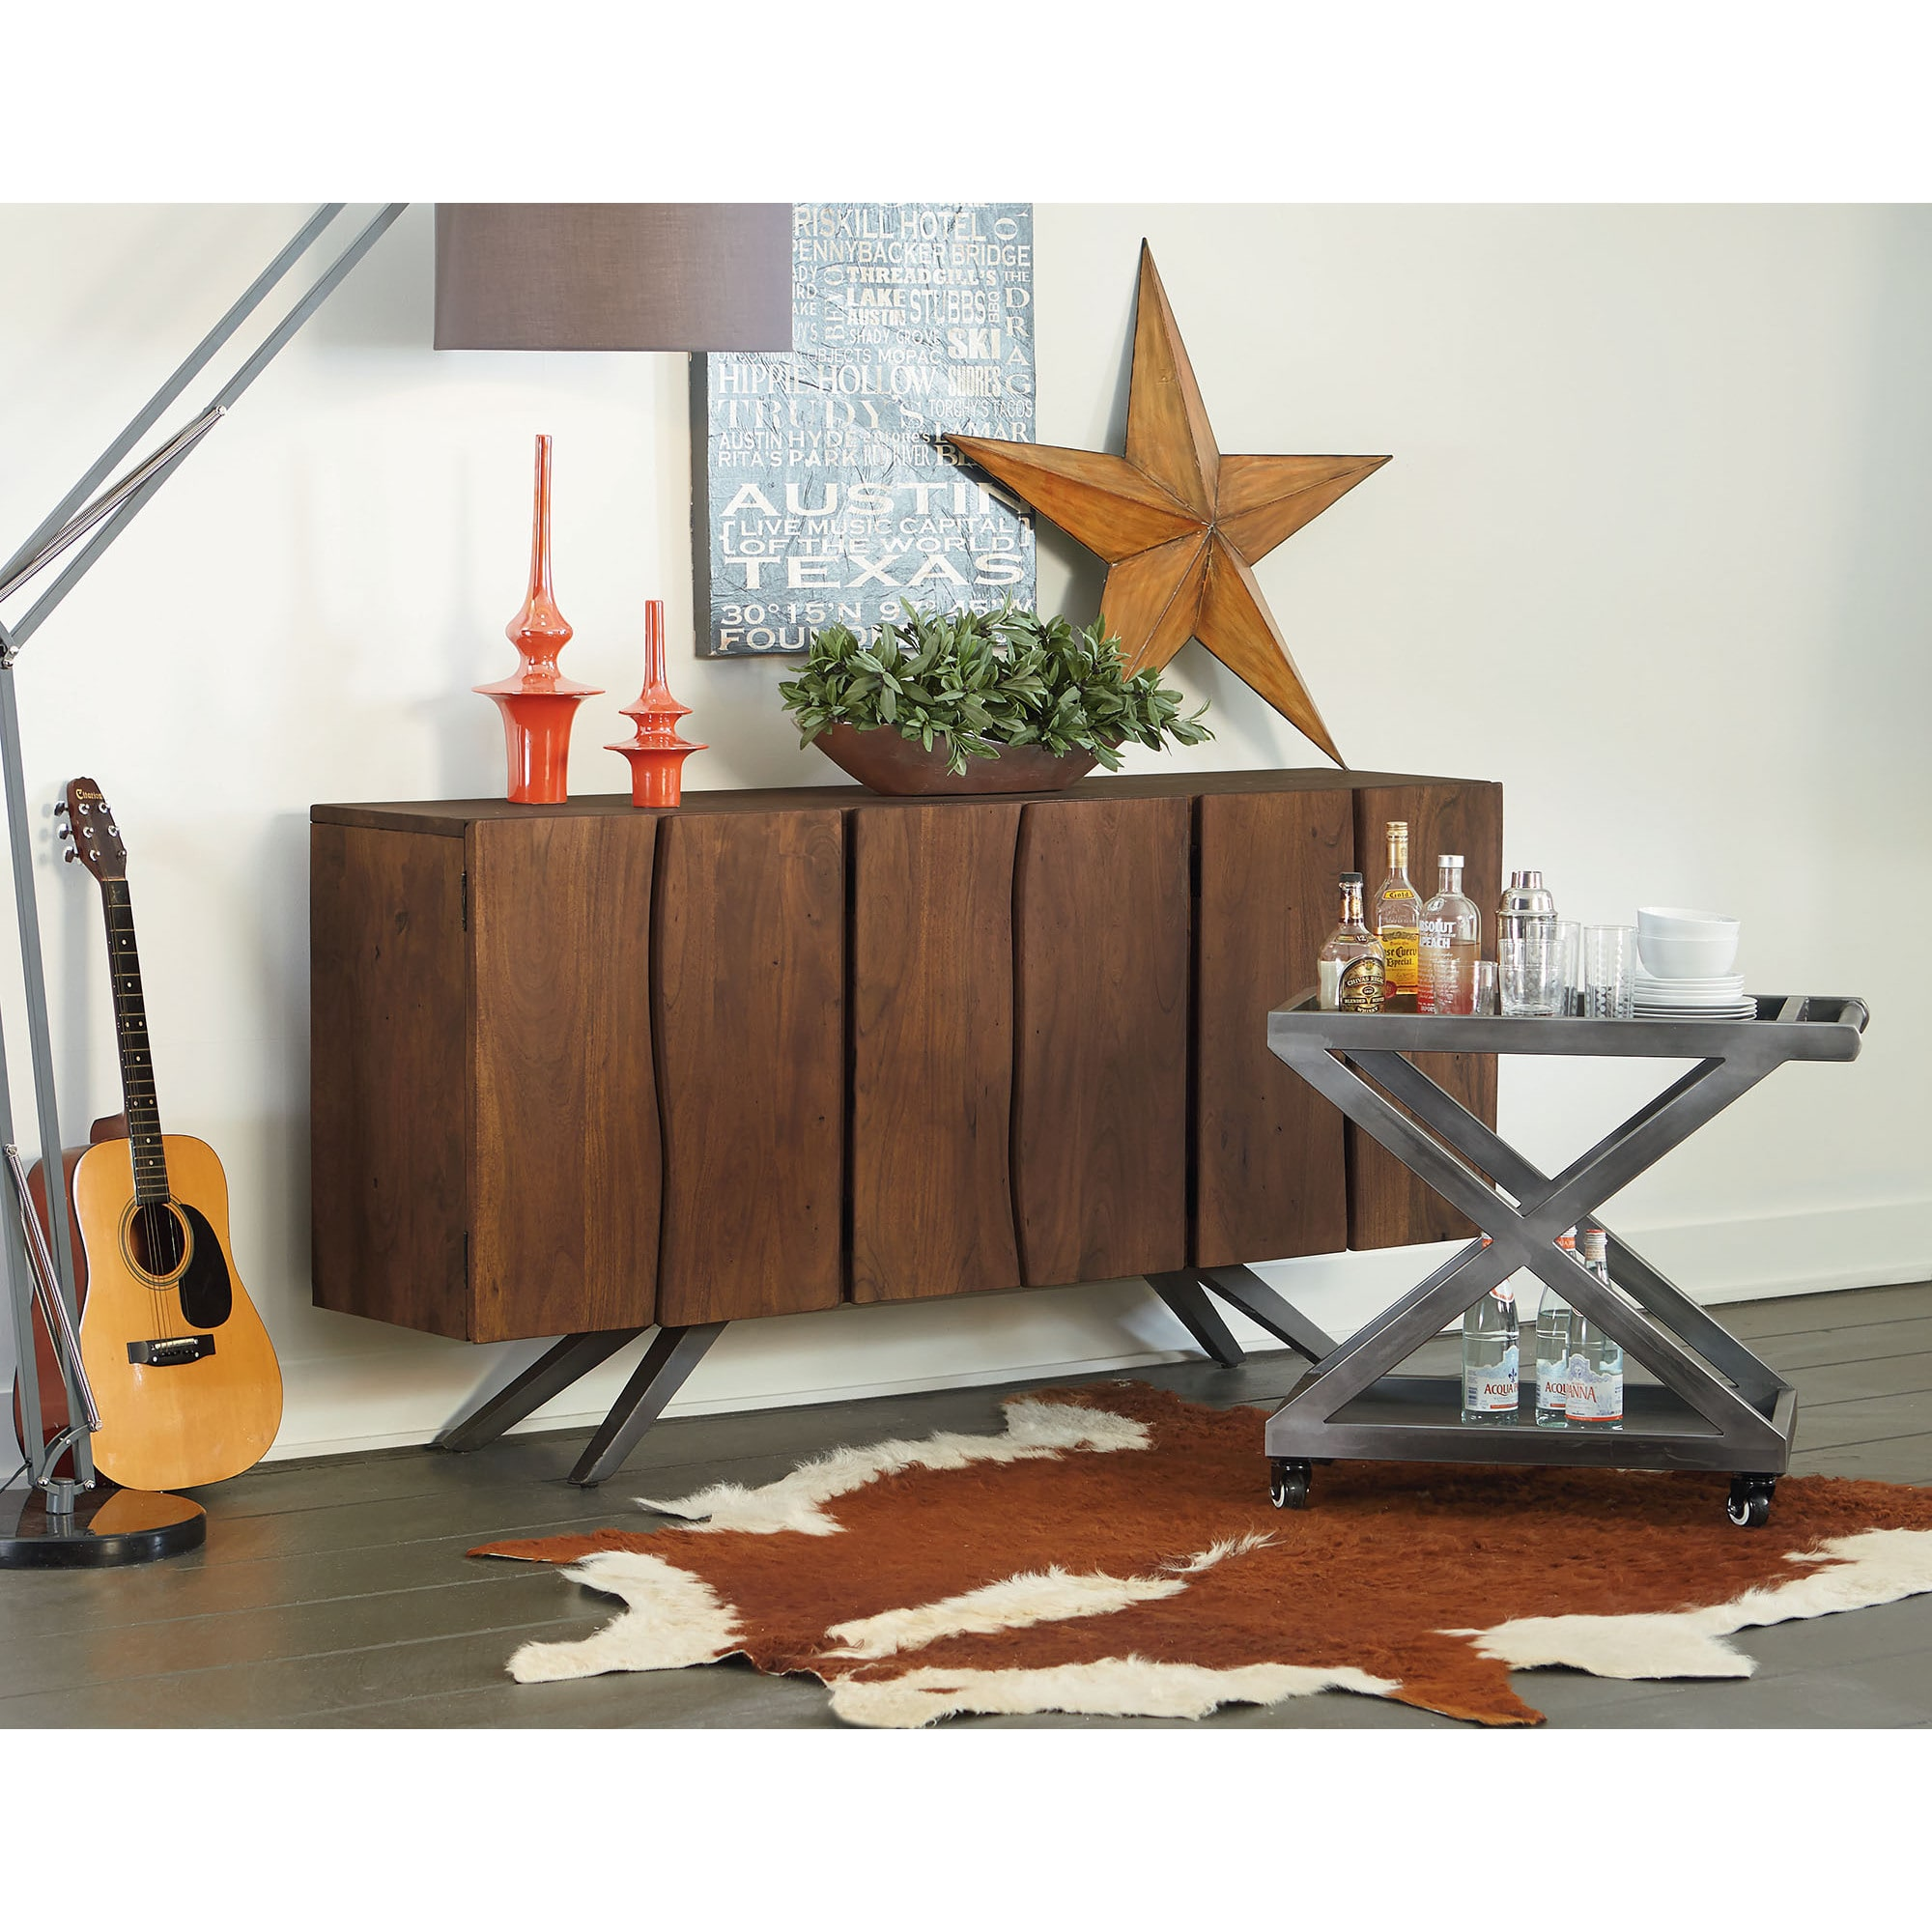 Marvelous Home Trends And Design Burghala Acacia Wood Sideboard